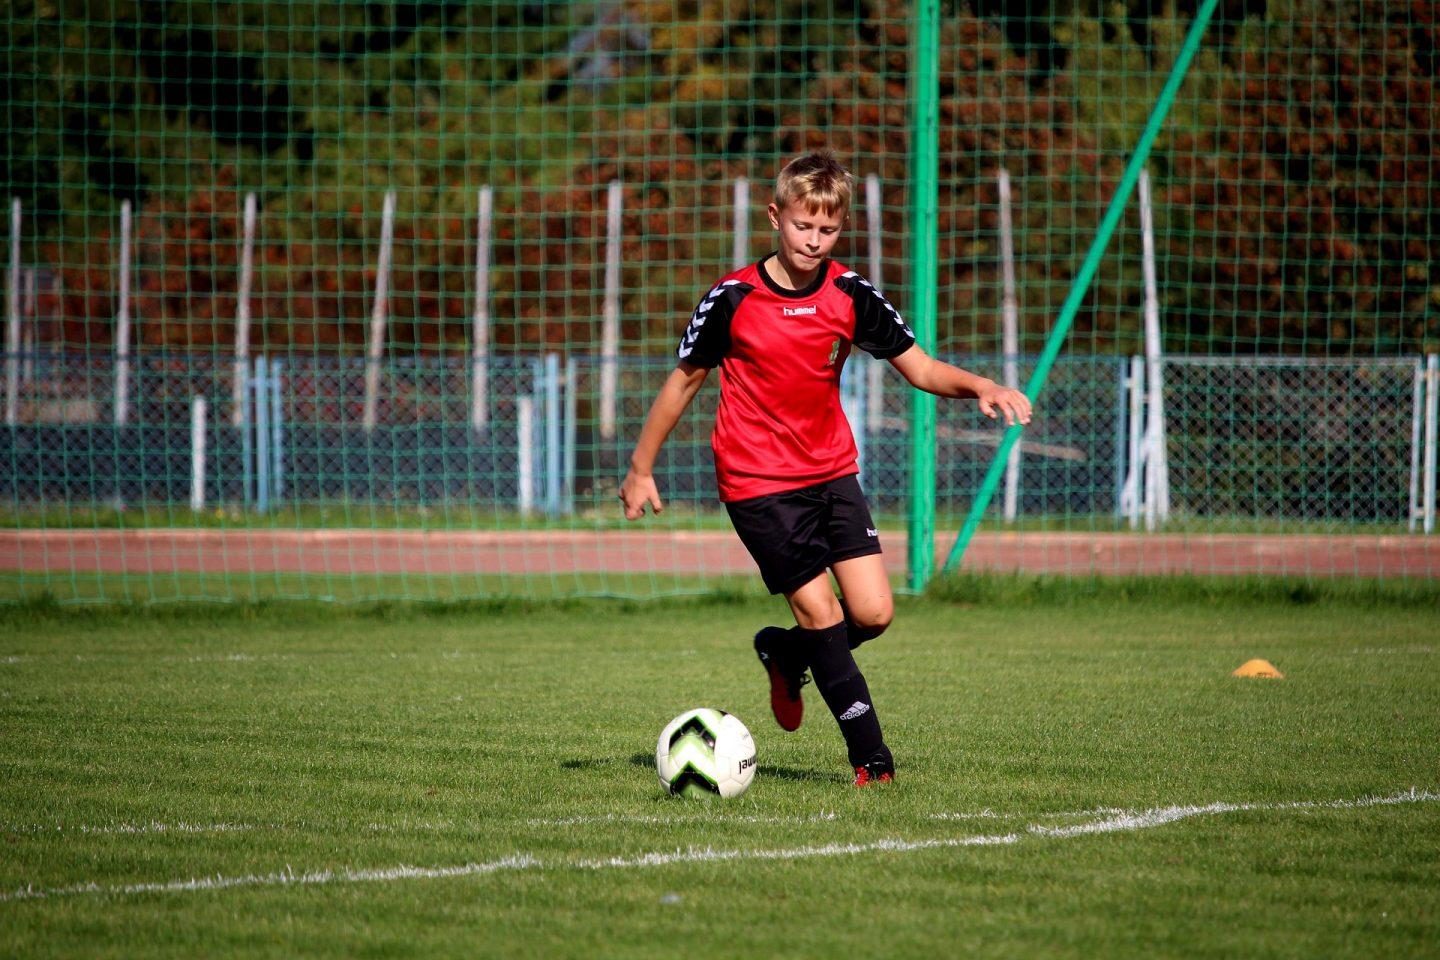 child playing football wearing a red kit